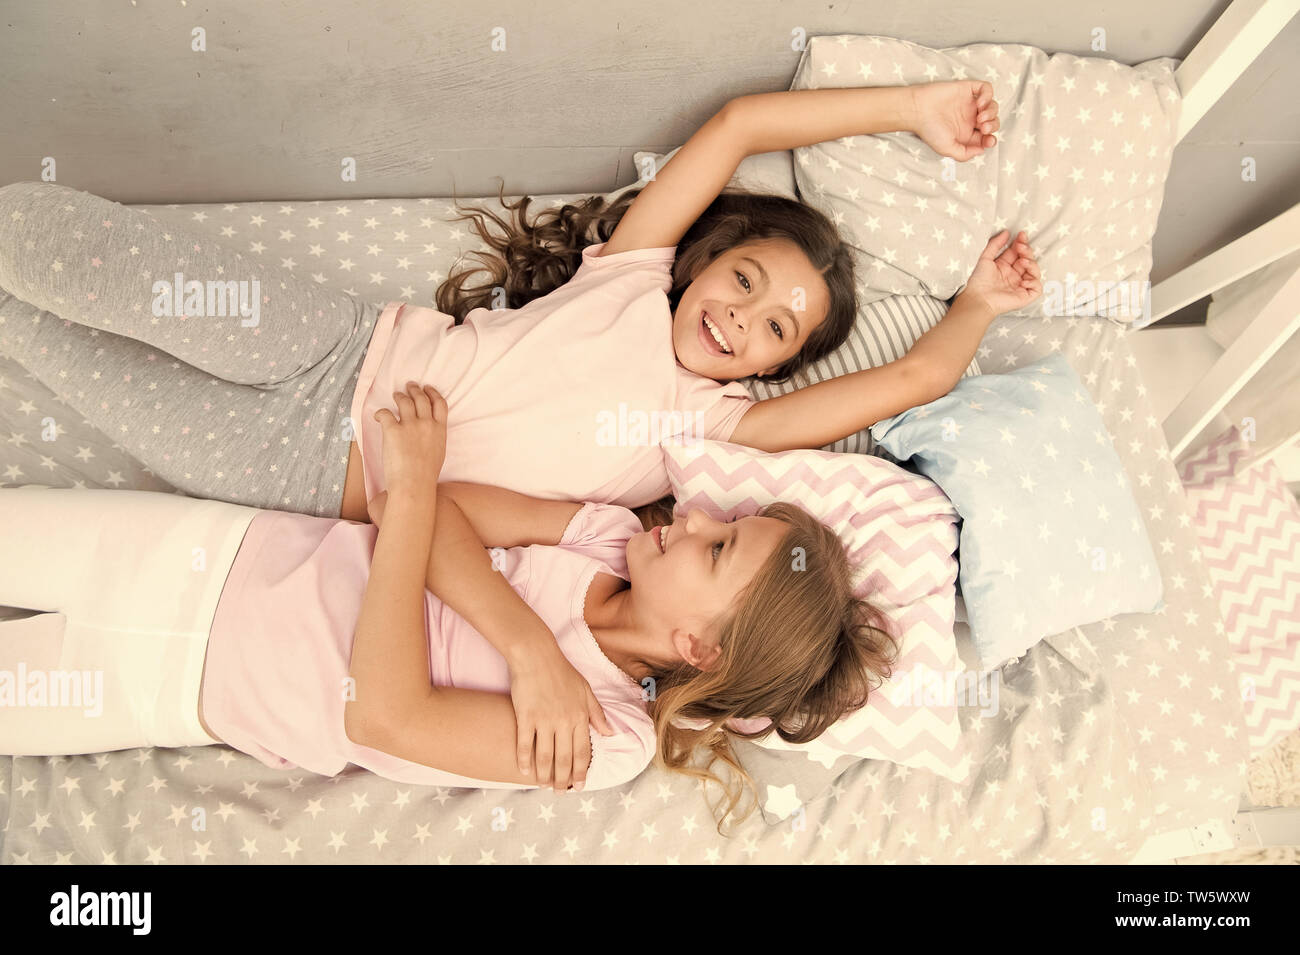 Invite friend for sleepover. Best friends forever. Consider theme slumber party. Slumber party timeless childhood tradition. Girls relaxing on bed. Sl - Stock Image